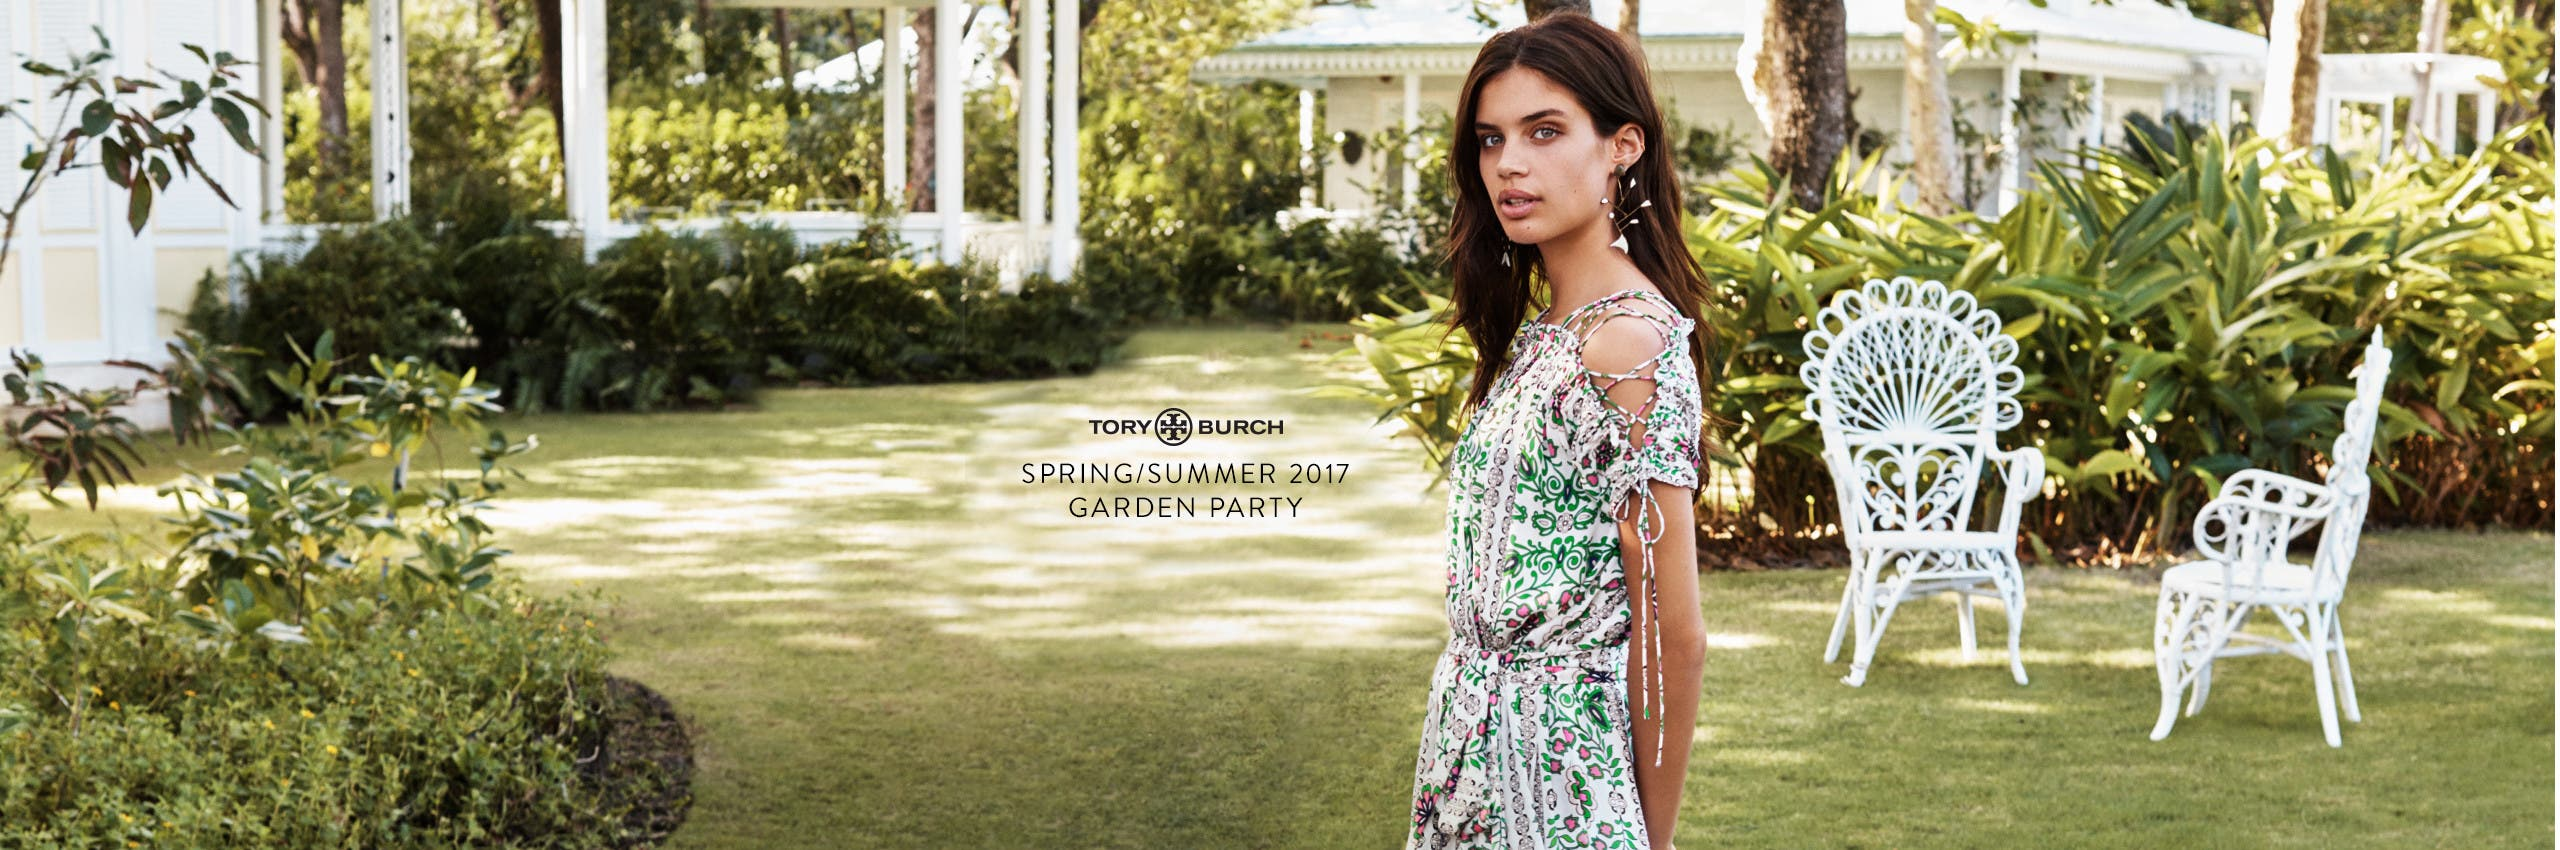 Tory Burch Spring/Summer 2017: garden party.